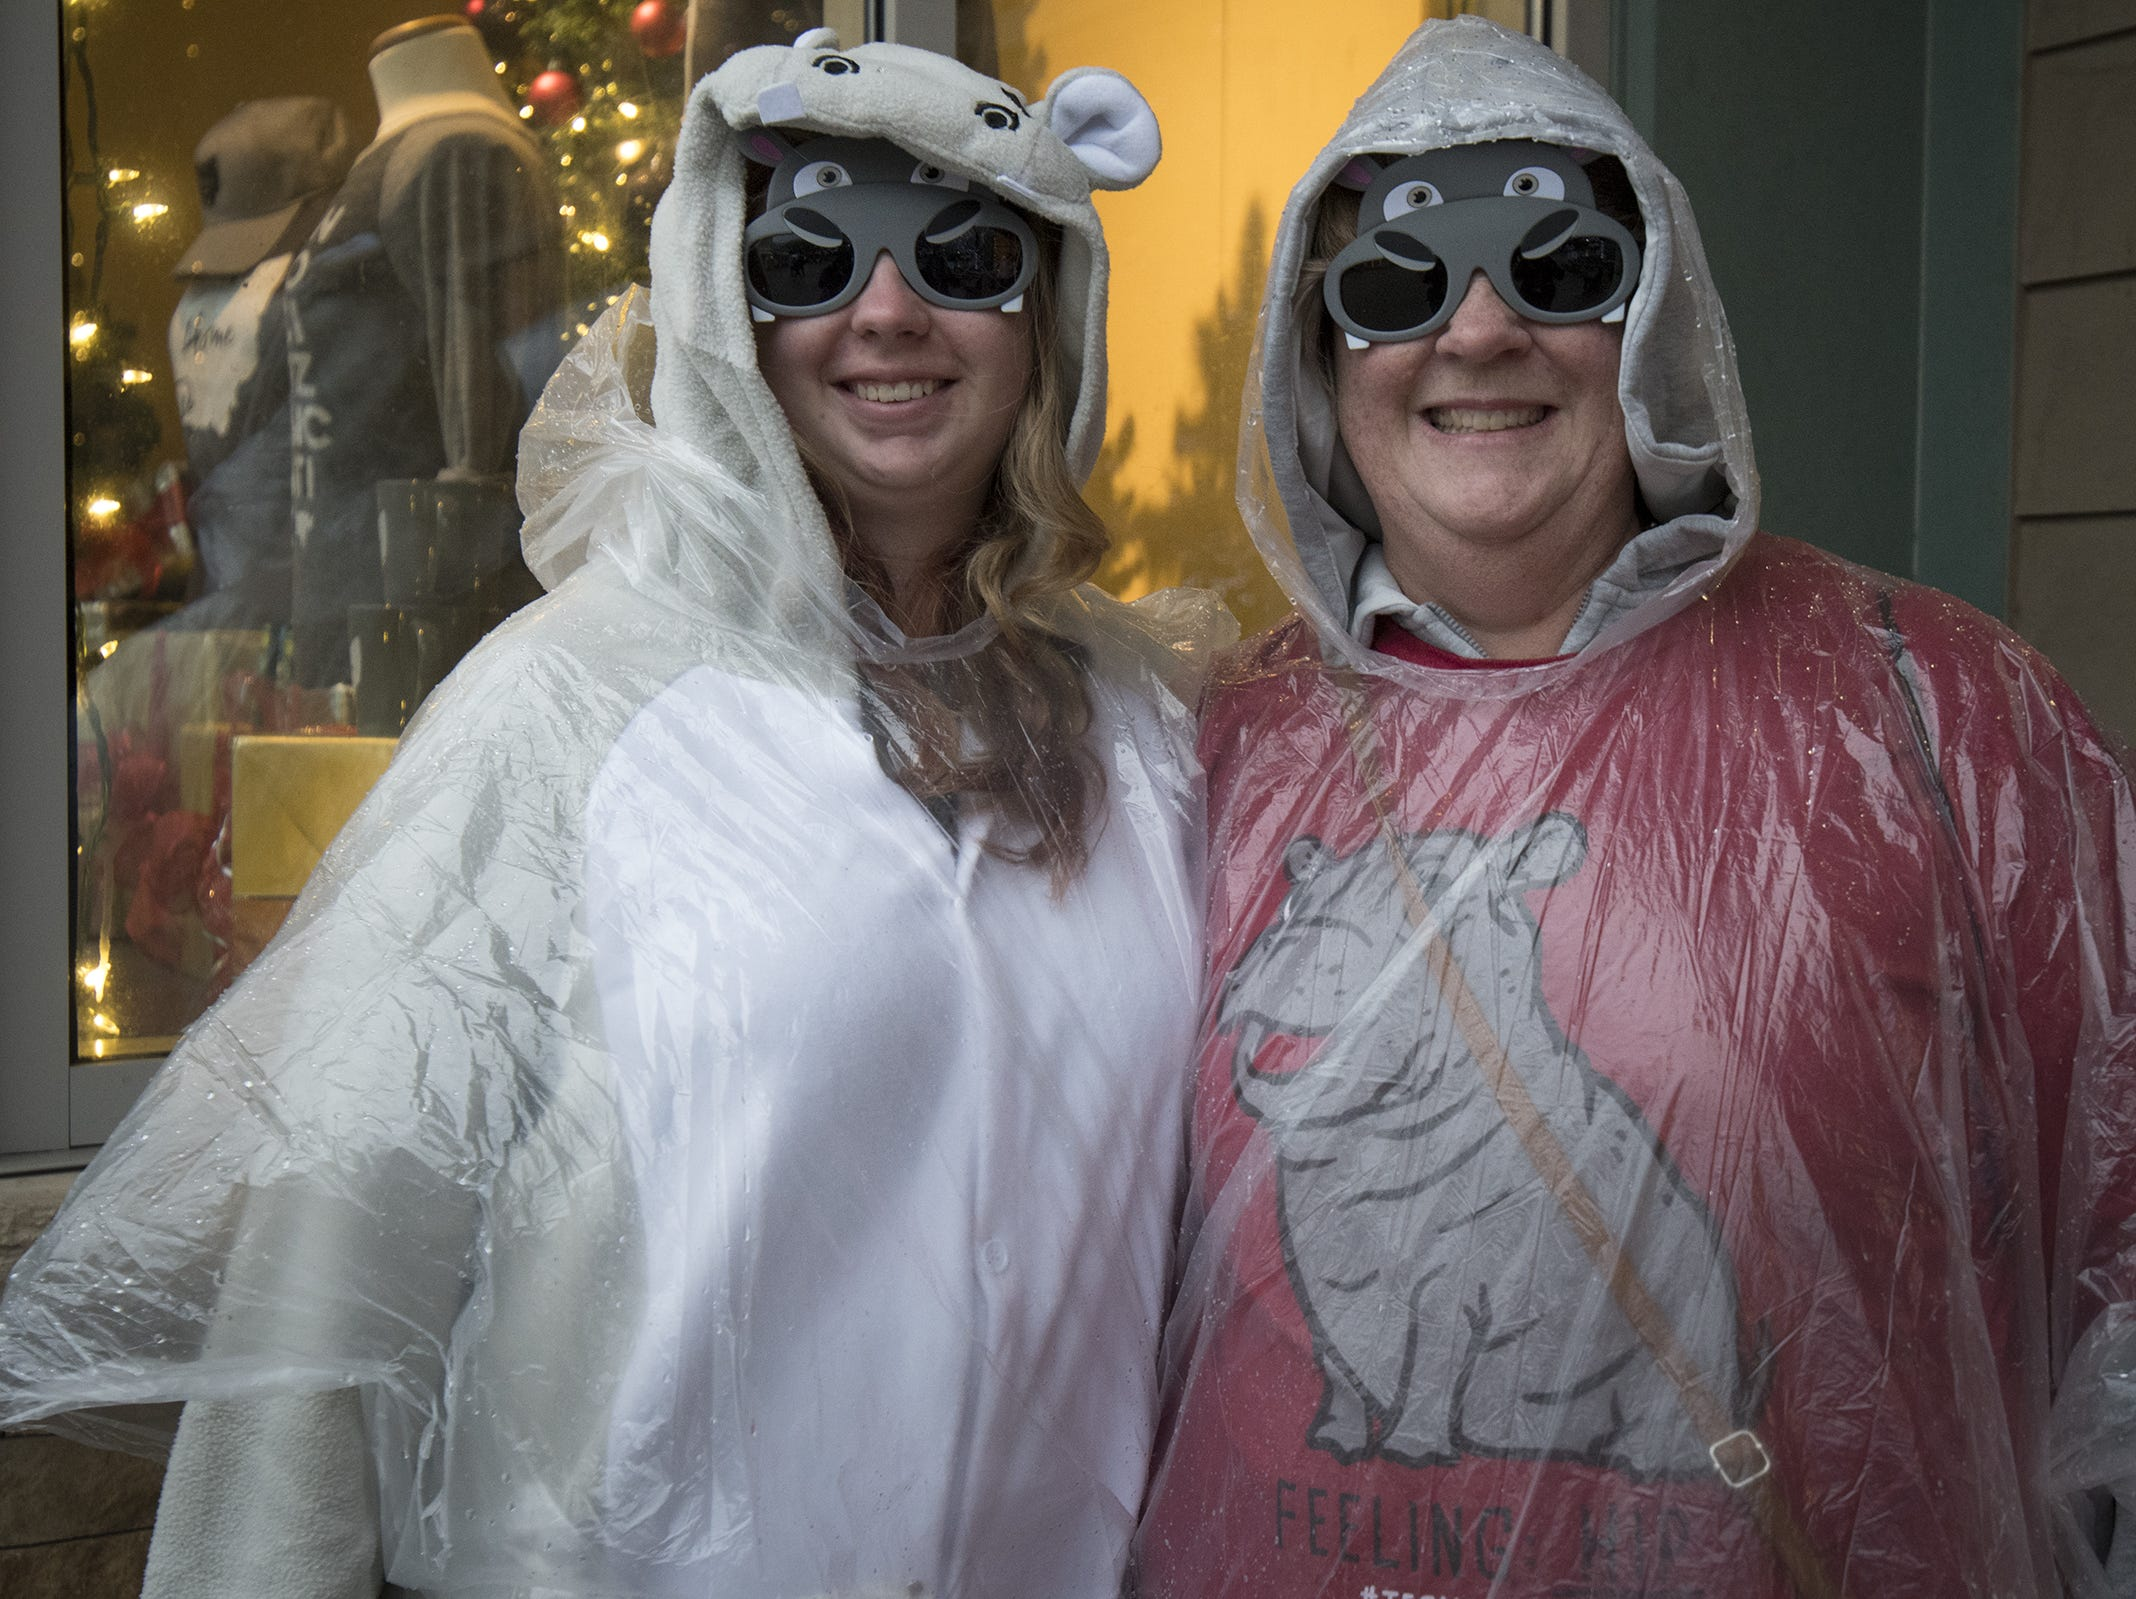 Lisa and Victoria Steuver of Bright show off their Fiona gear at the Cincinnati Zoo's Fiona 1k walk in honor of the beloved hippo's 1,000-pound milestone Saturday, December 1, 2018 in Cincinnati, Ohio.